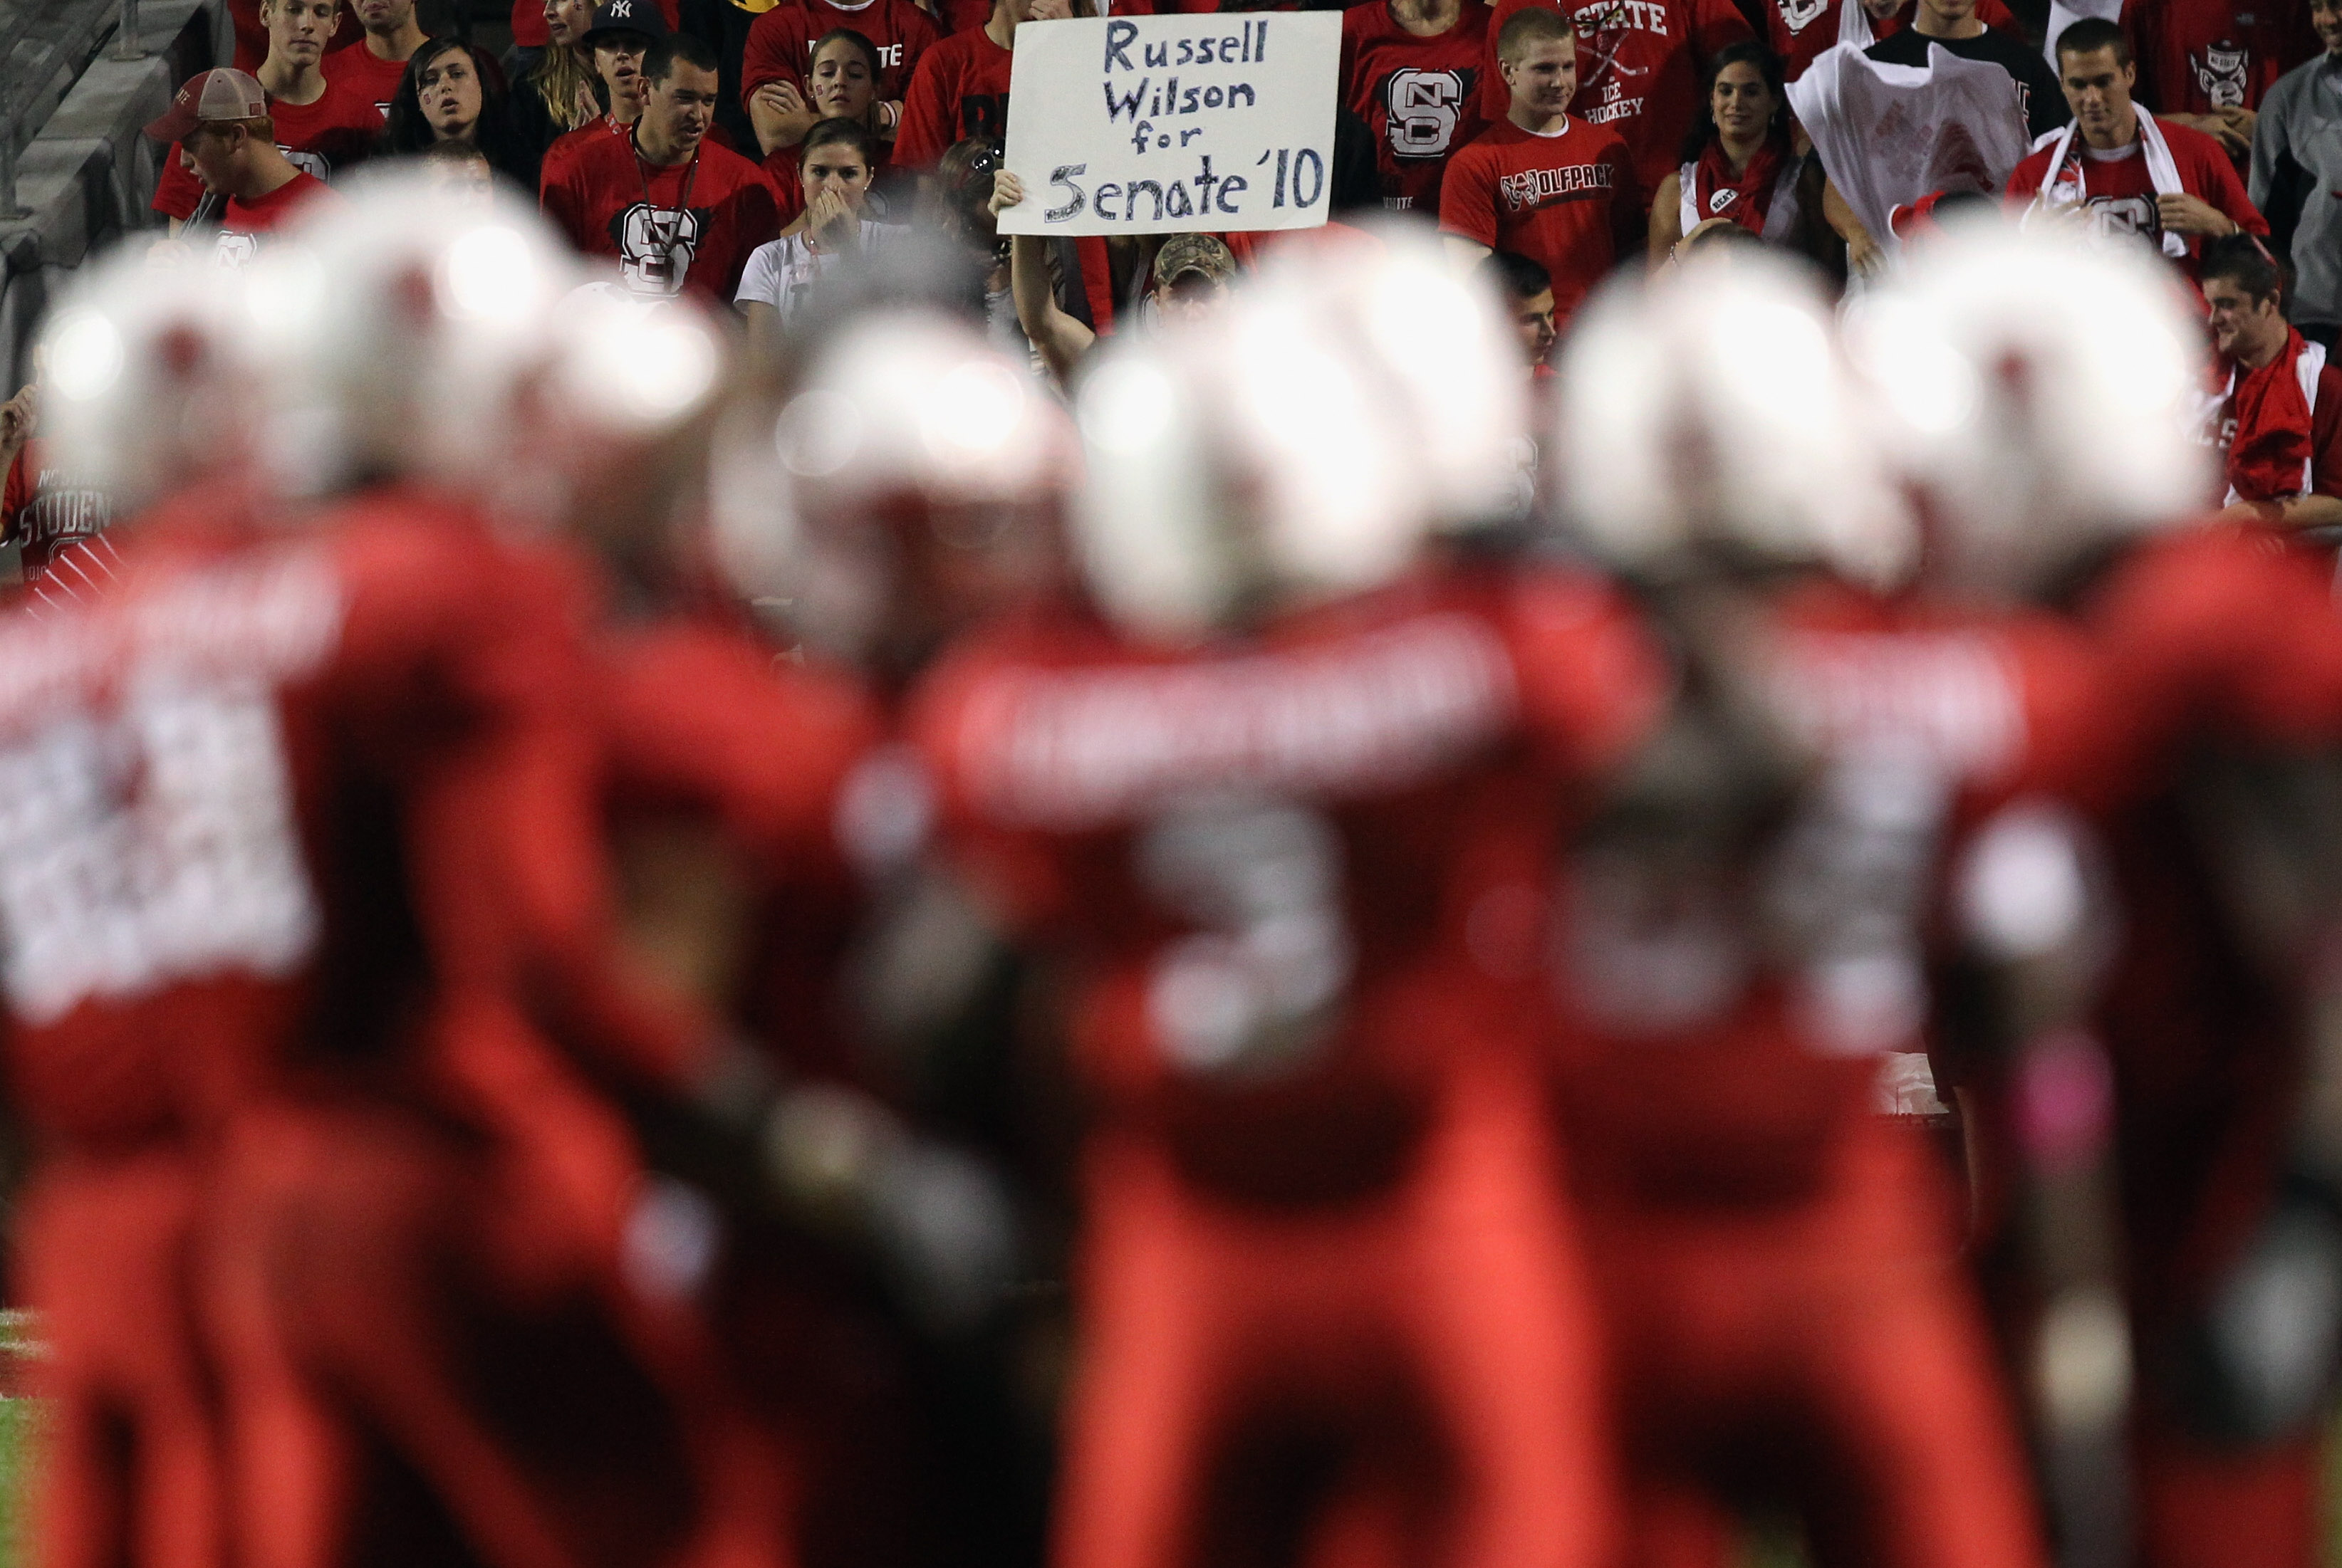 RALEIGH, NC - OCTOBER 28:  A sign for Russell Wilson #16 of the North Carolina State Wolfpack against the Florida State Seminoles during their game at Carter-Finley Stadium on October 28, 2010 in Raleigh, North Carolina.  (Photo by Streeter Lecka/Getty Im